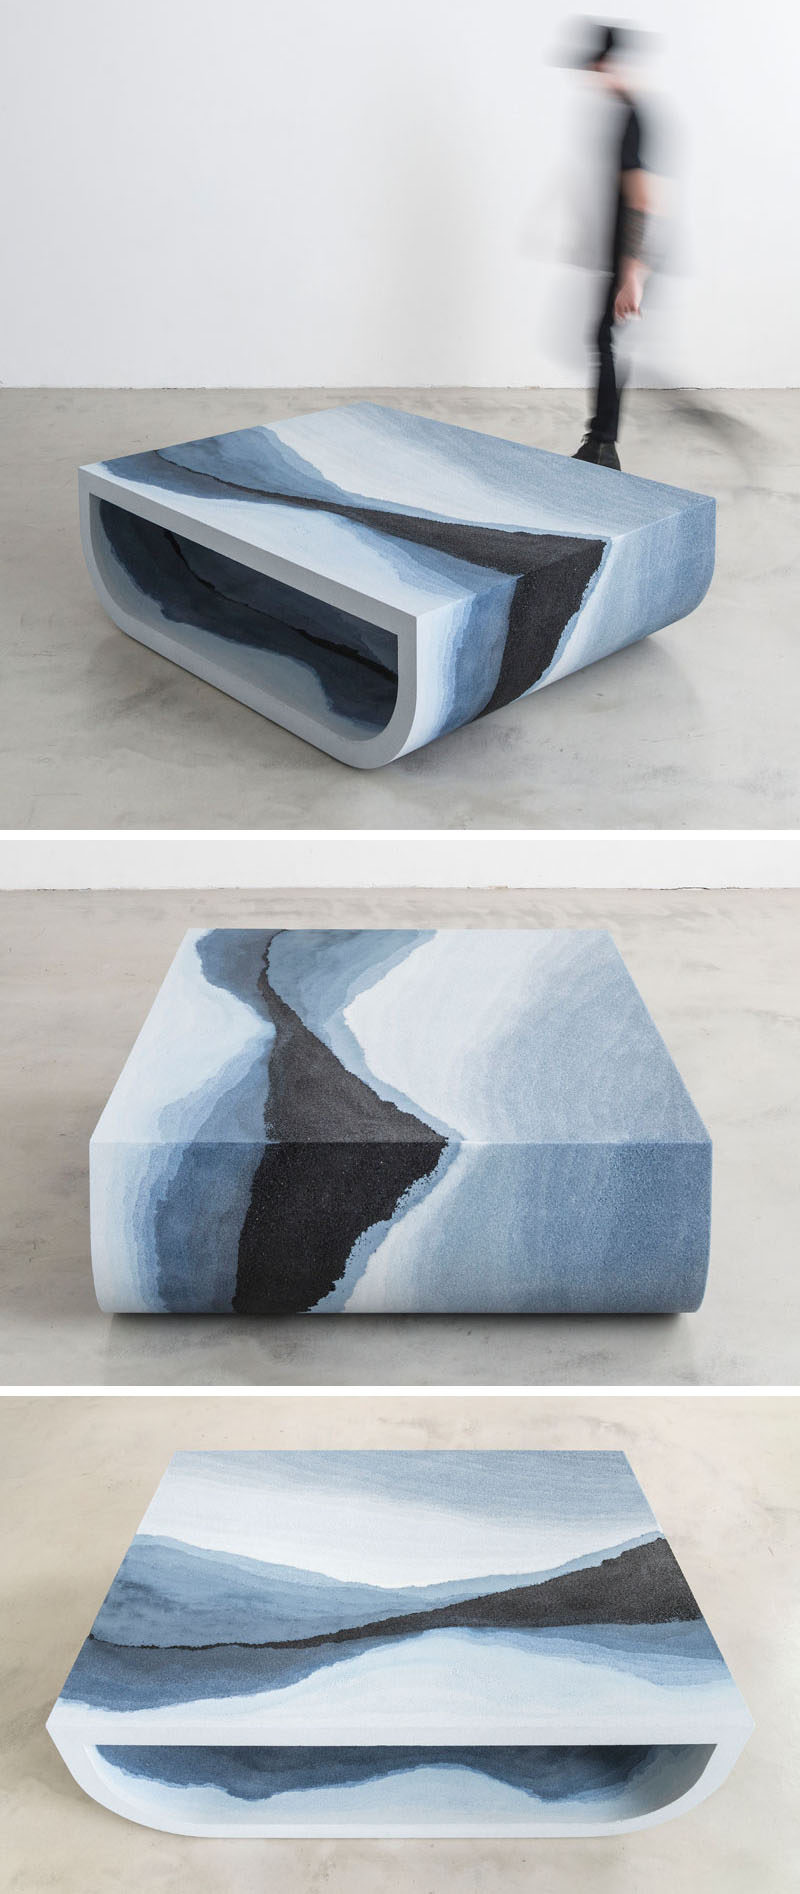 Designer Fernando Mastrangelo has created the Escape Collection, a group of modern furniture pieces, like this coffee table, that are made using hand-dyed sand and silica to create simple forms that look like a three-dimensional landscape painting.